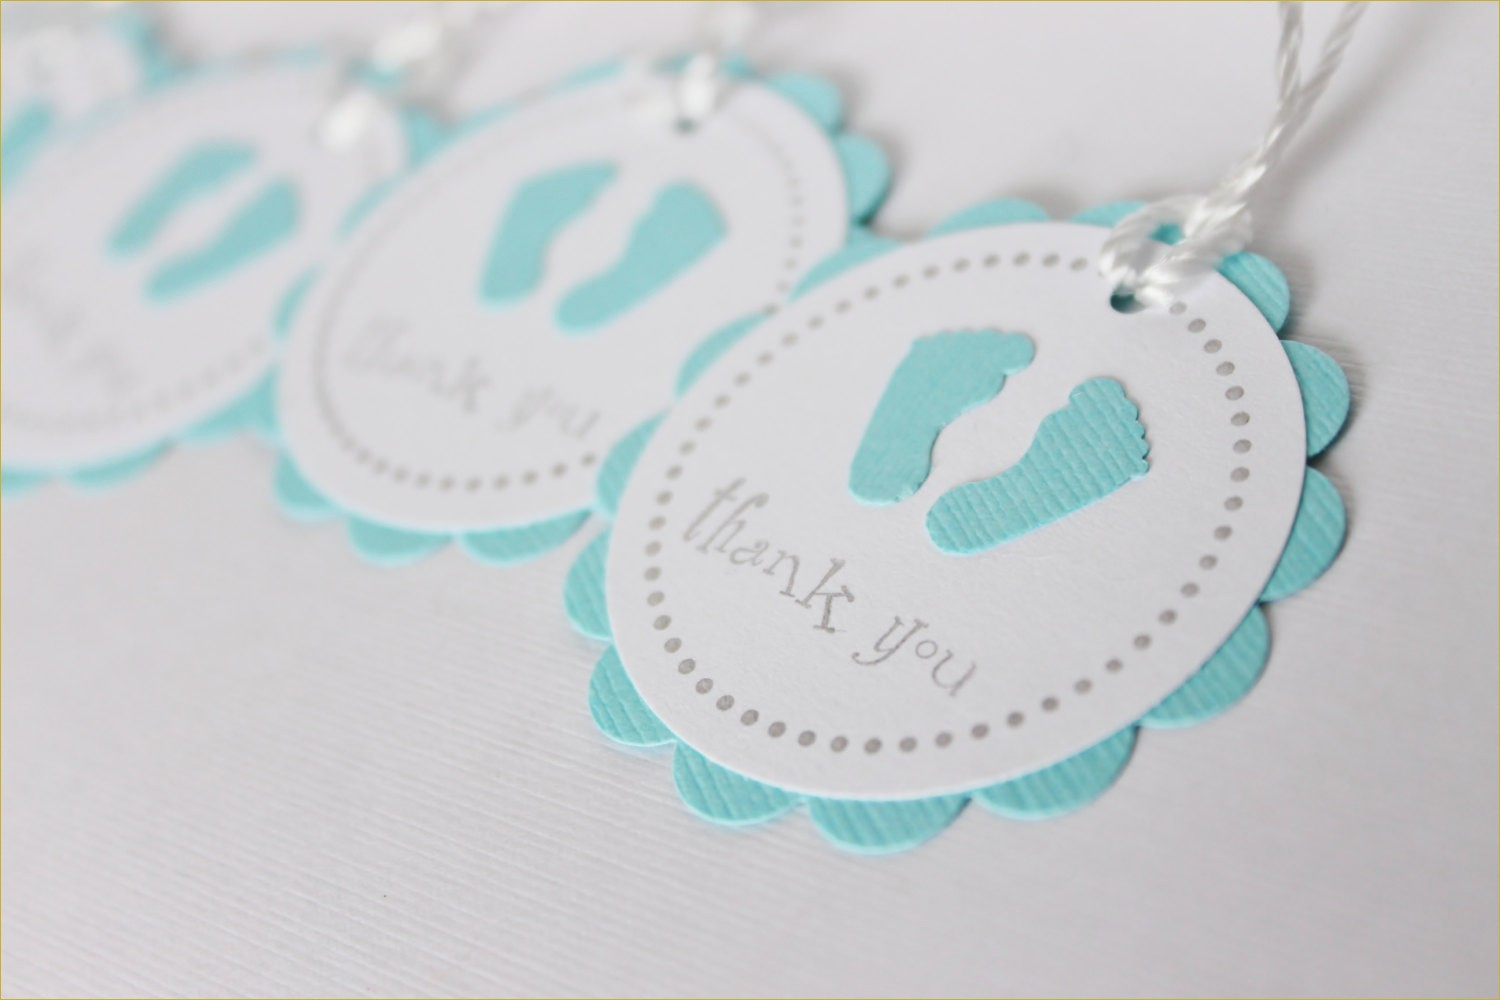 Glamorous Free Printable Baby Shower Favor Tags Template | Sample Documents with Free Printable Baby Shower Favor Tags Template